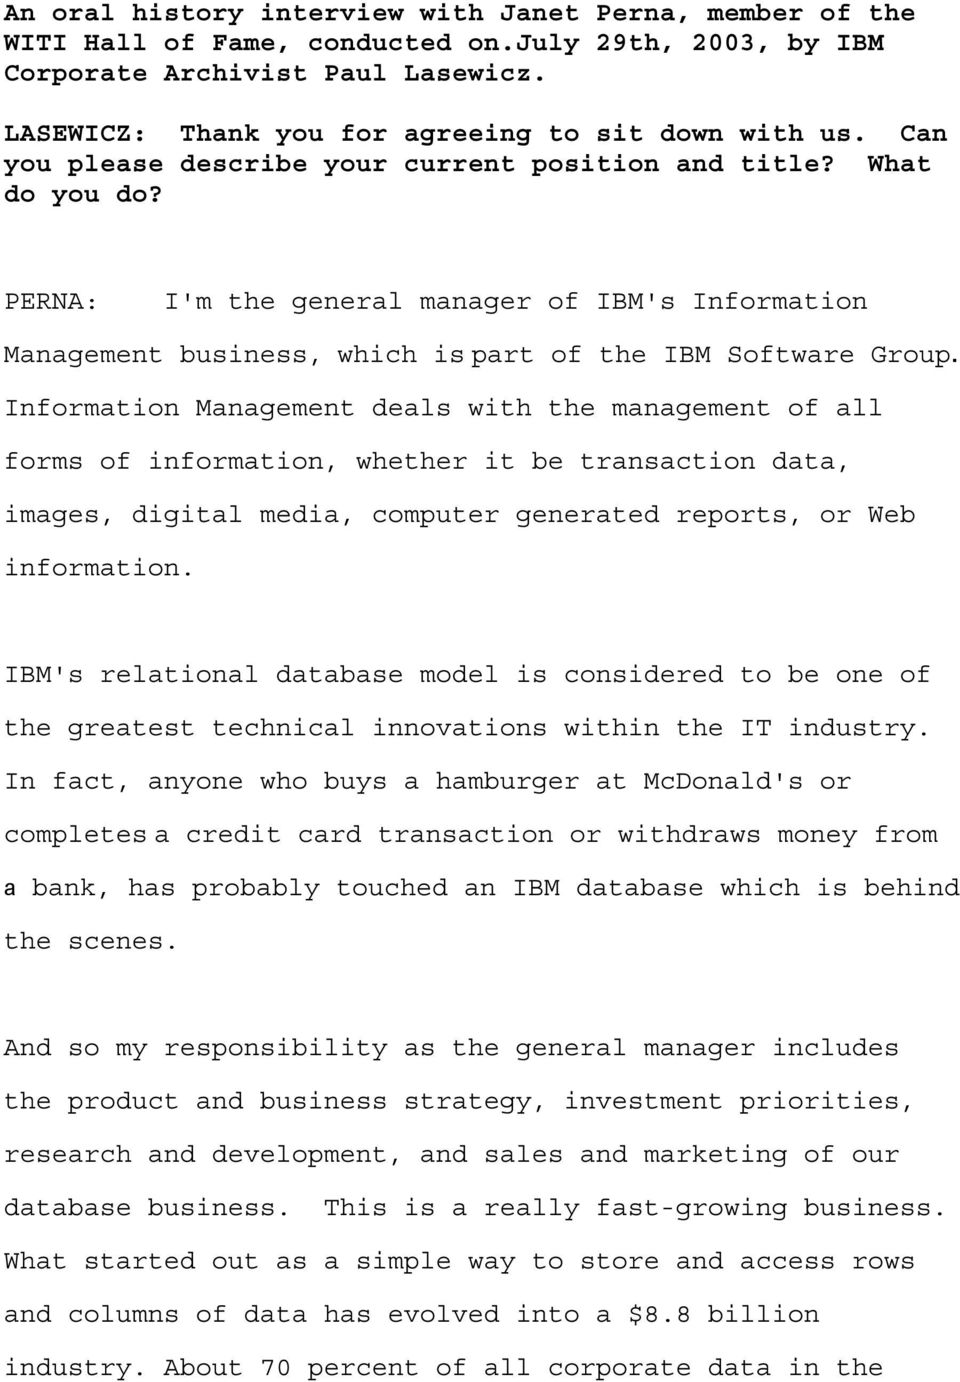 I'm the general manager of IBM's Information Management business, which is part of the IBM Software Group.